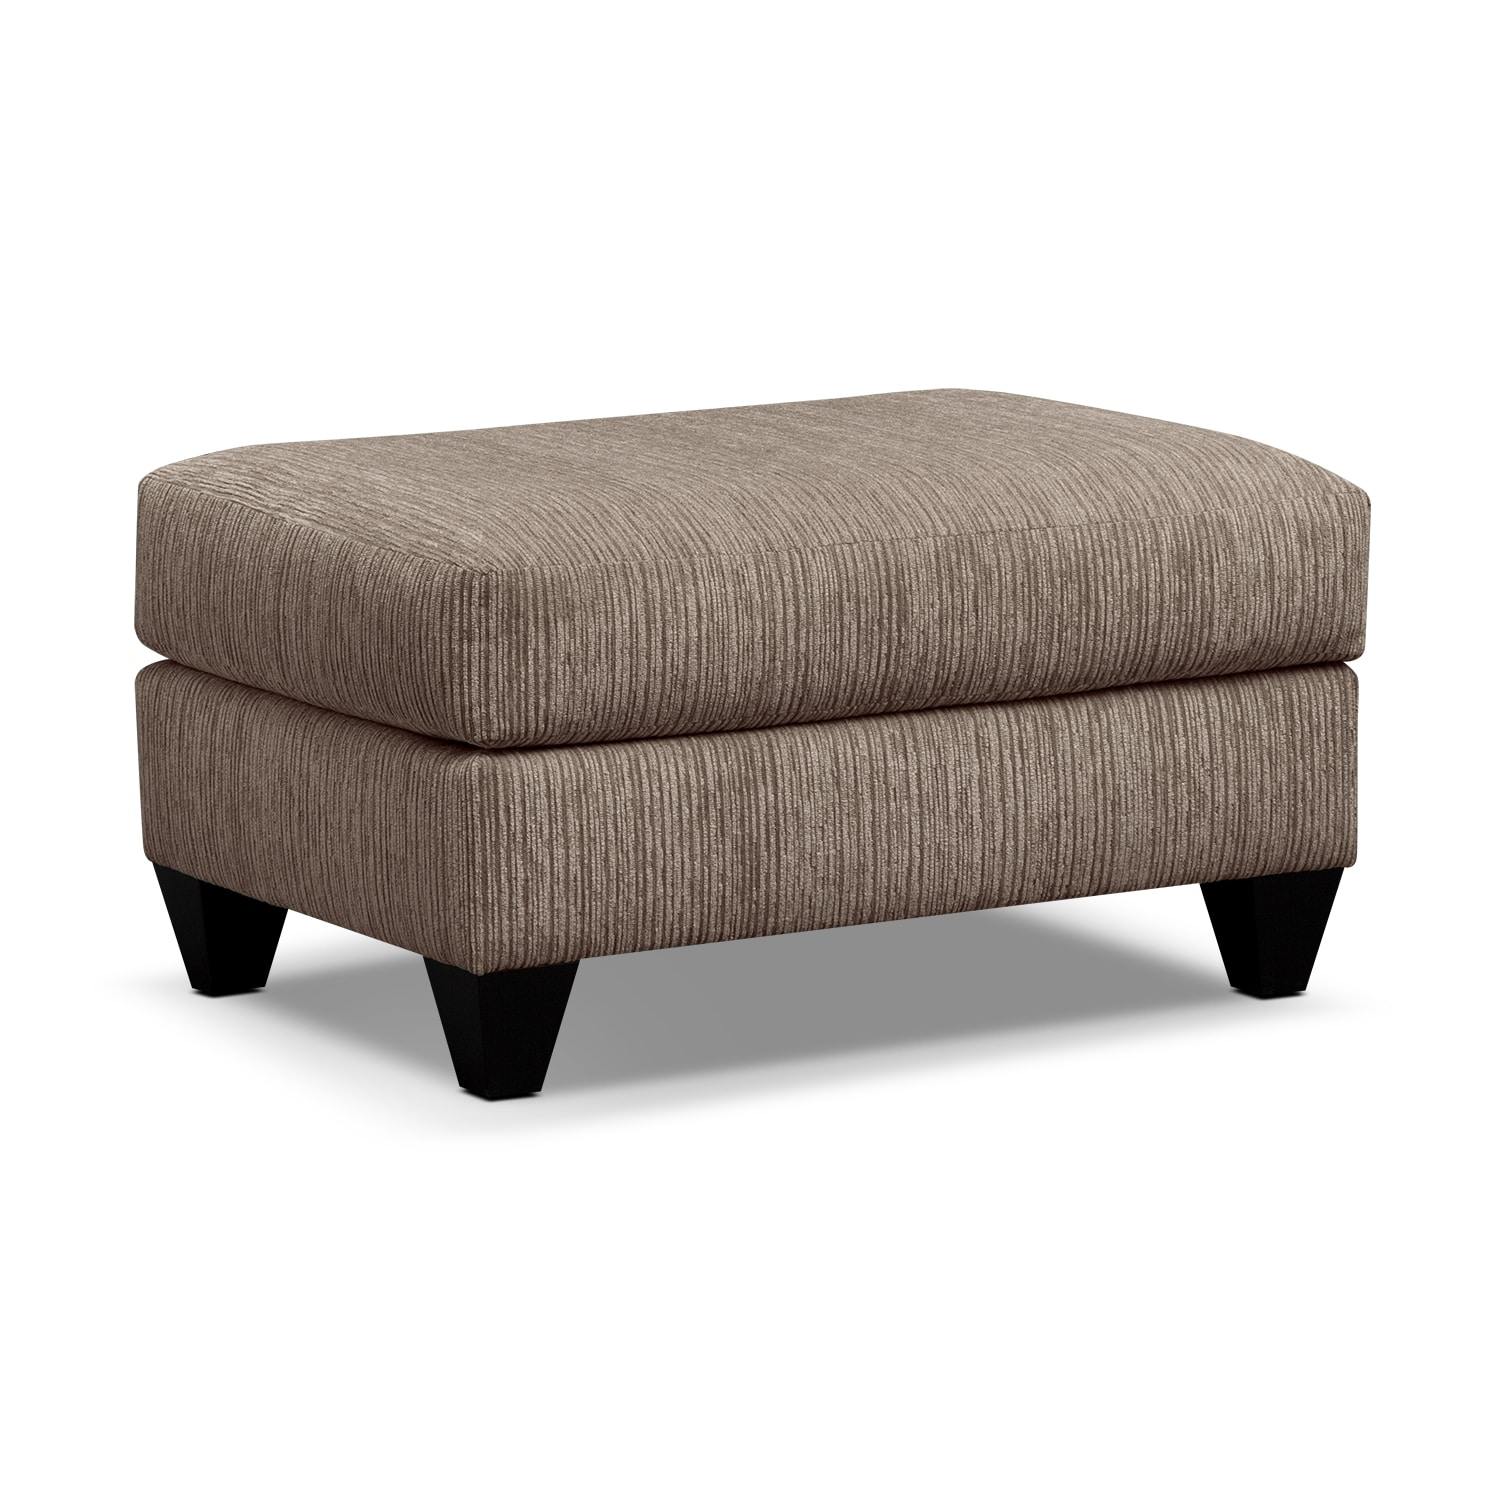 Living Room Furniture - Santa Monica Ottoman